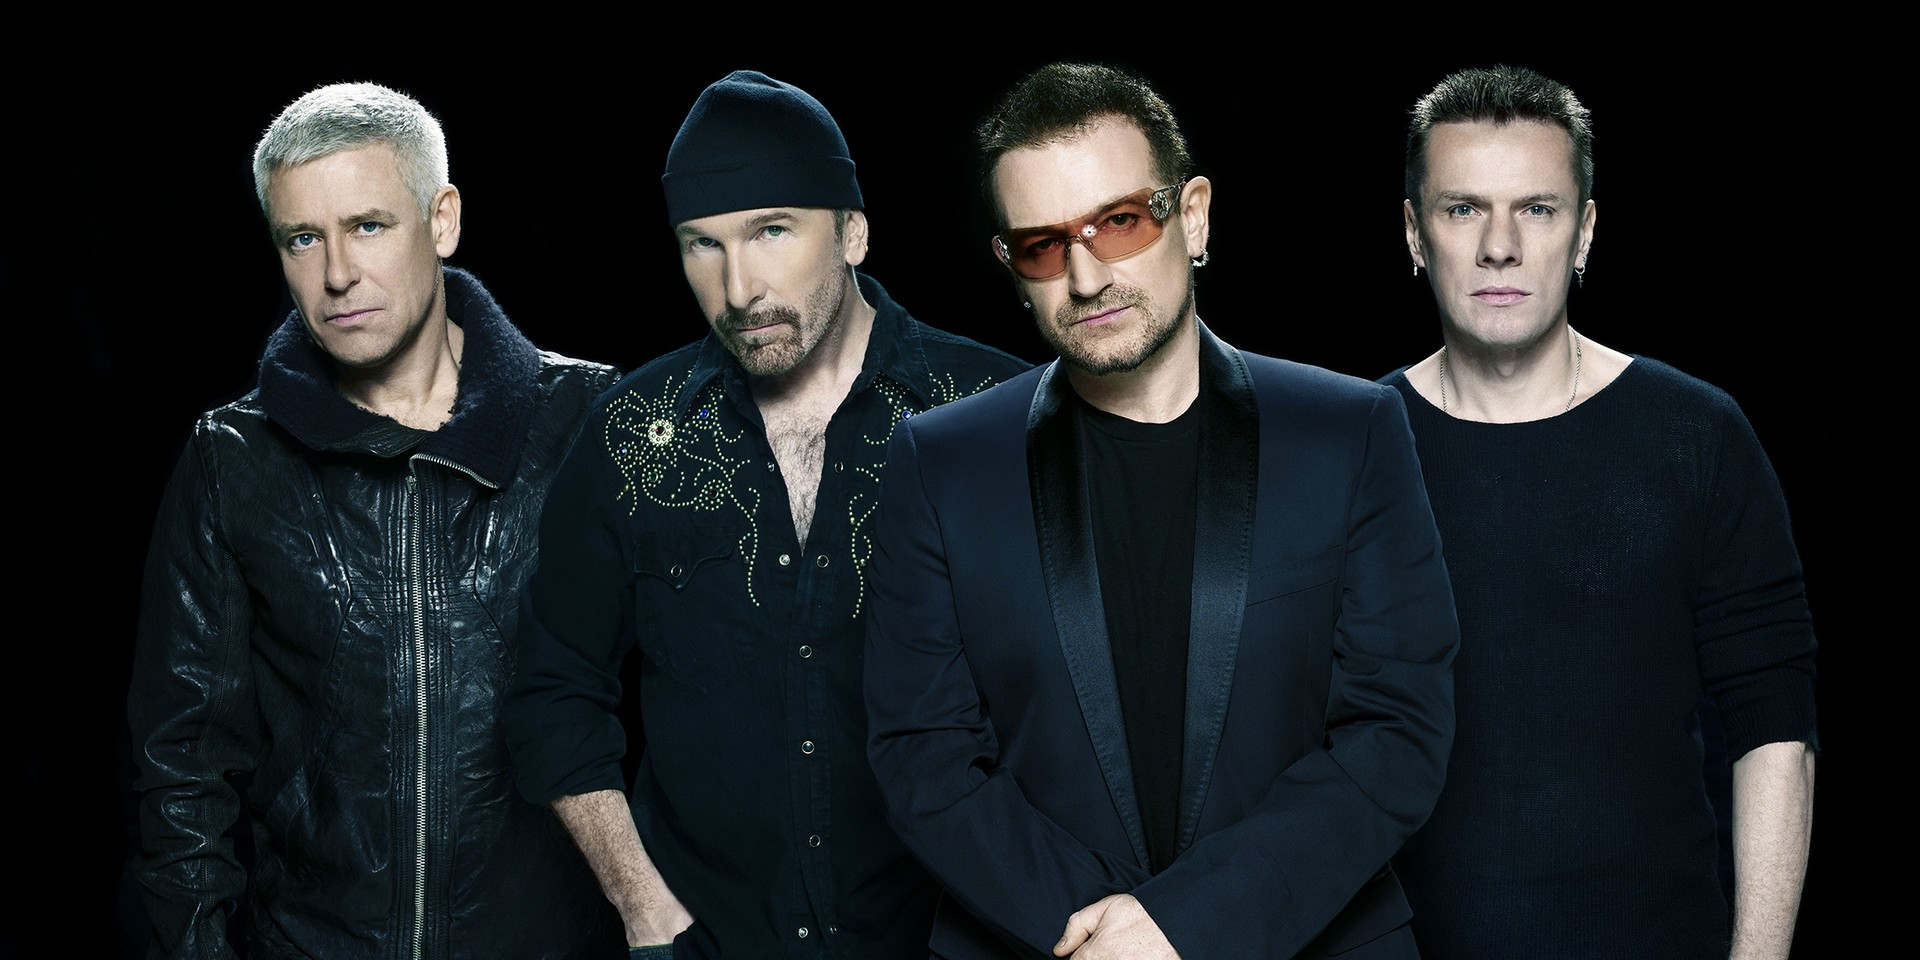 Hold up, are U2 coming to Singapore?